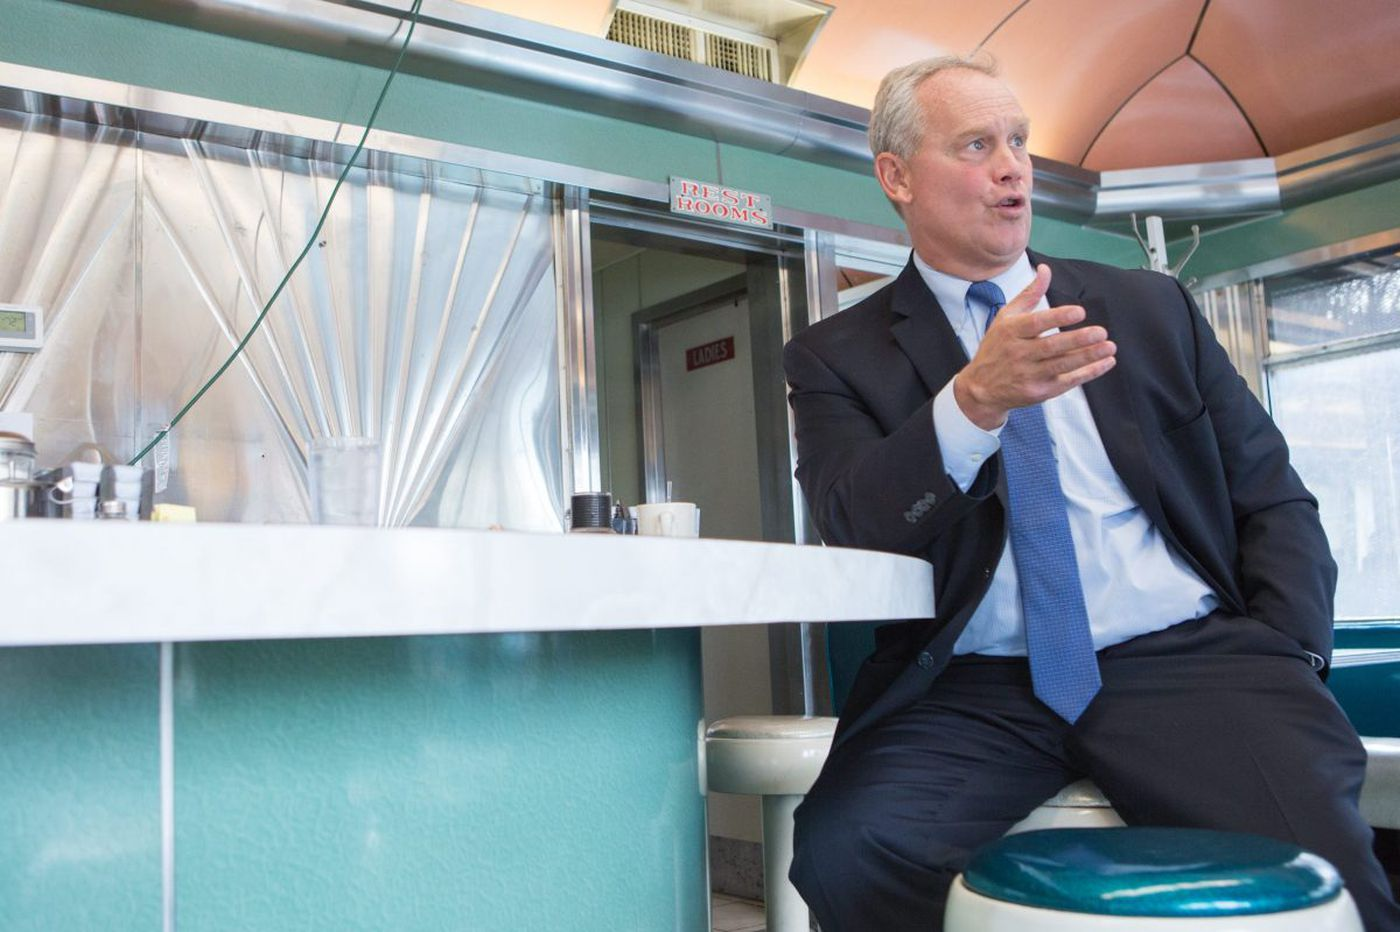 Pa. House Speaker Mike Turzai: 'We're lacking a leader in the governor's office'